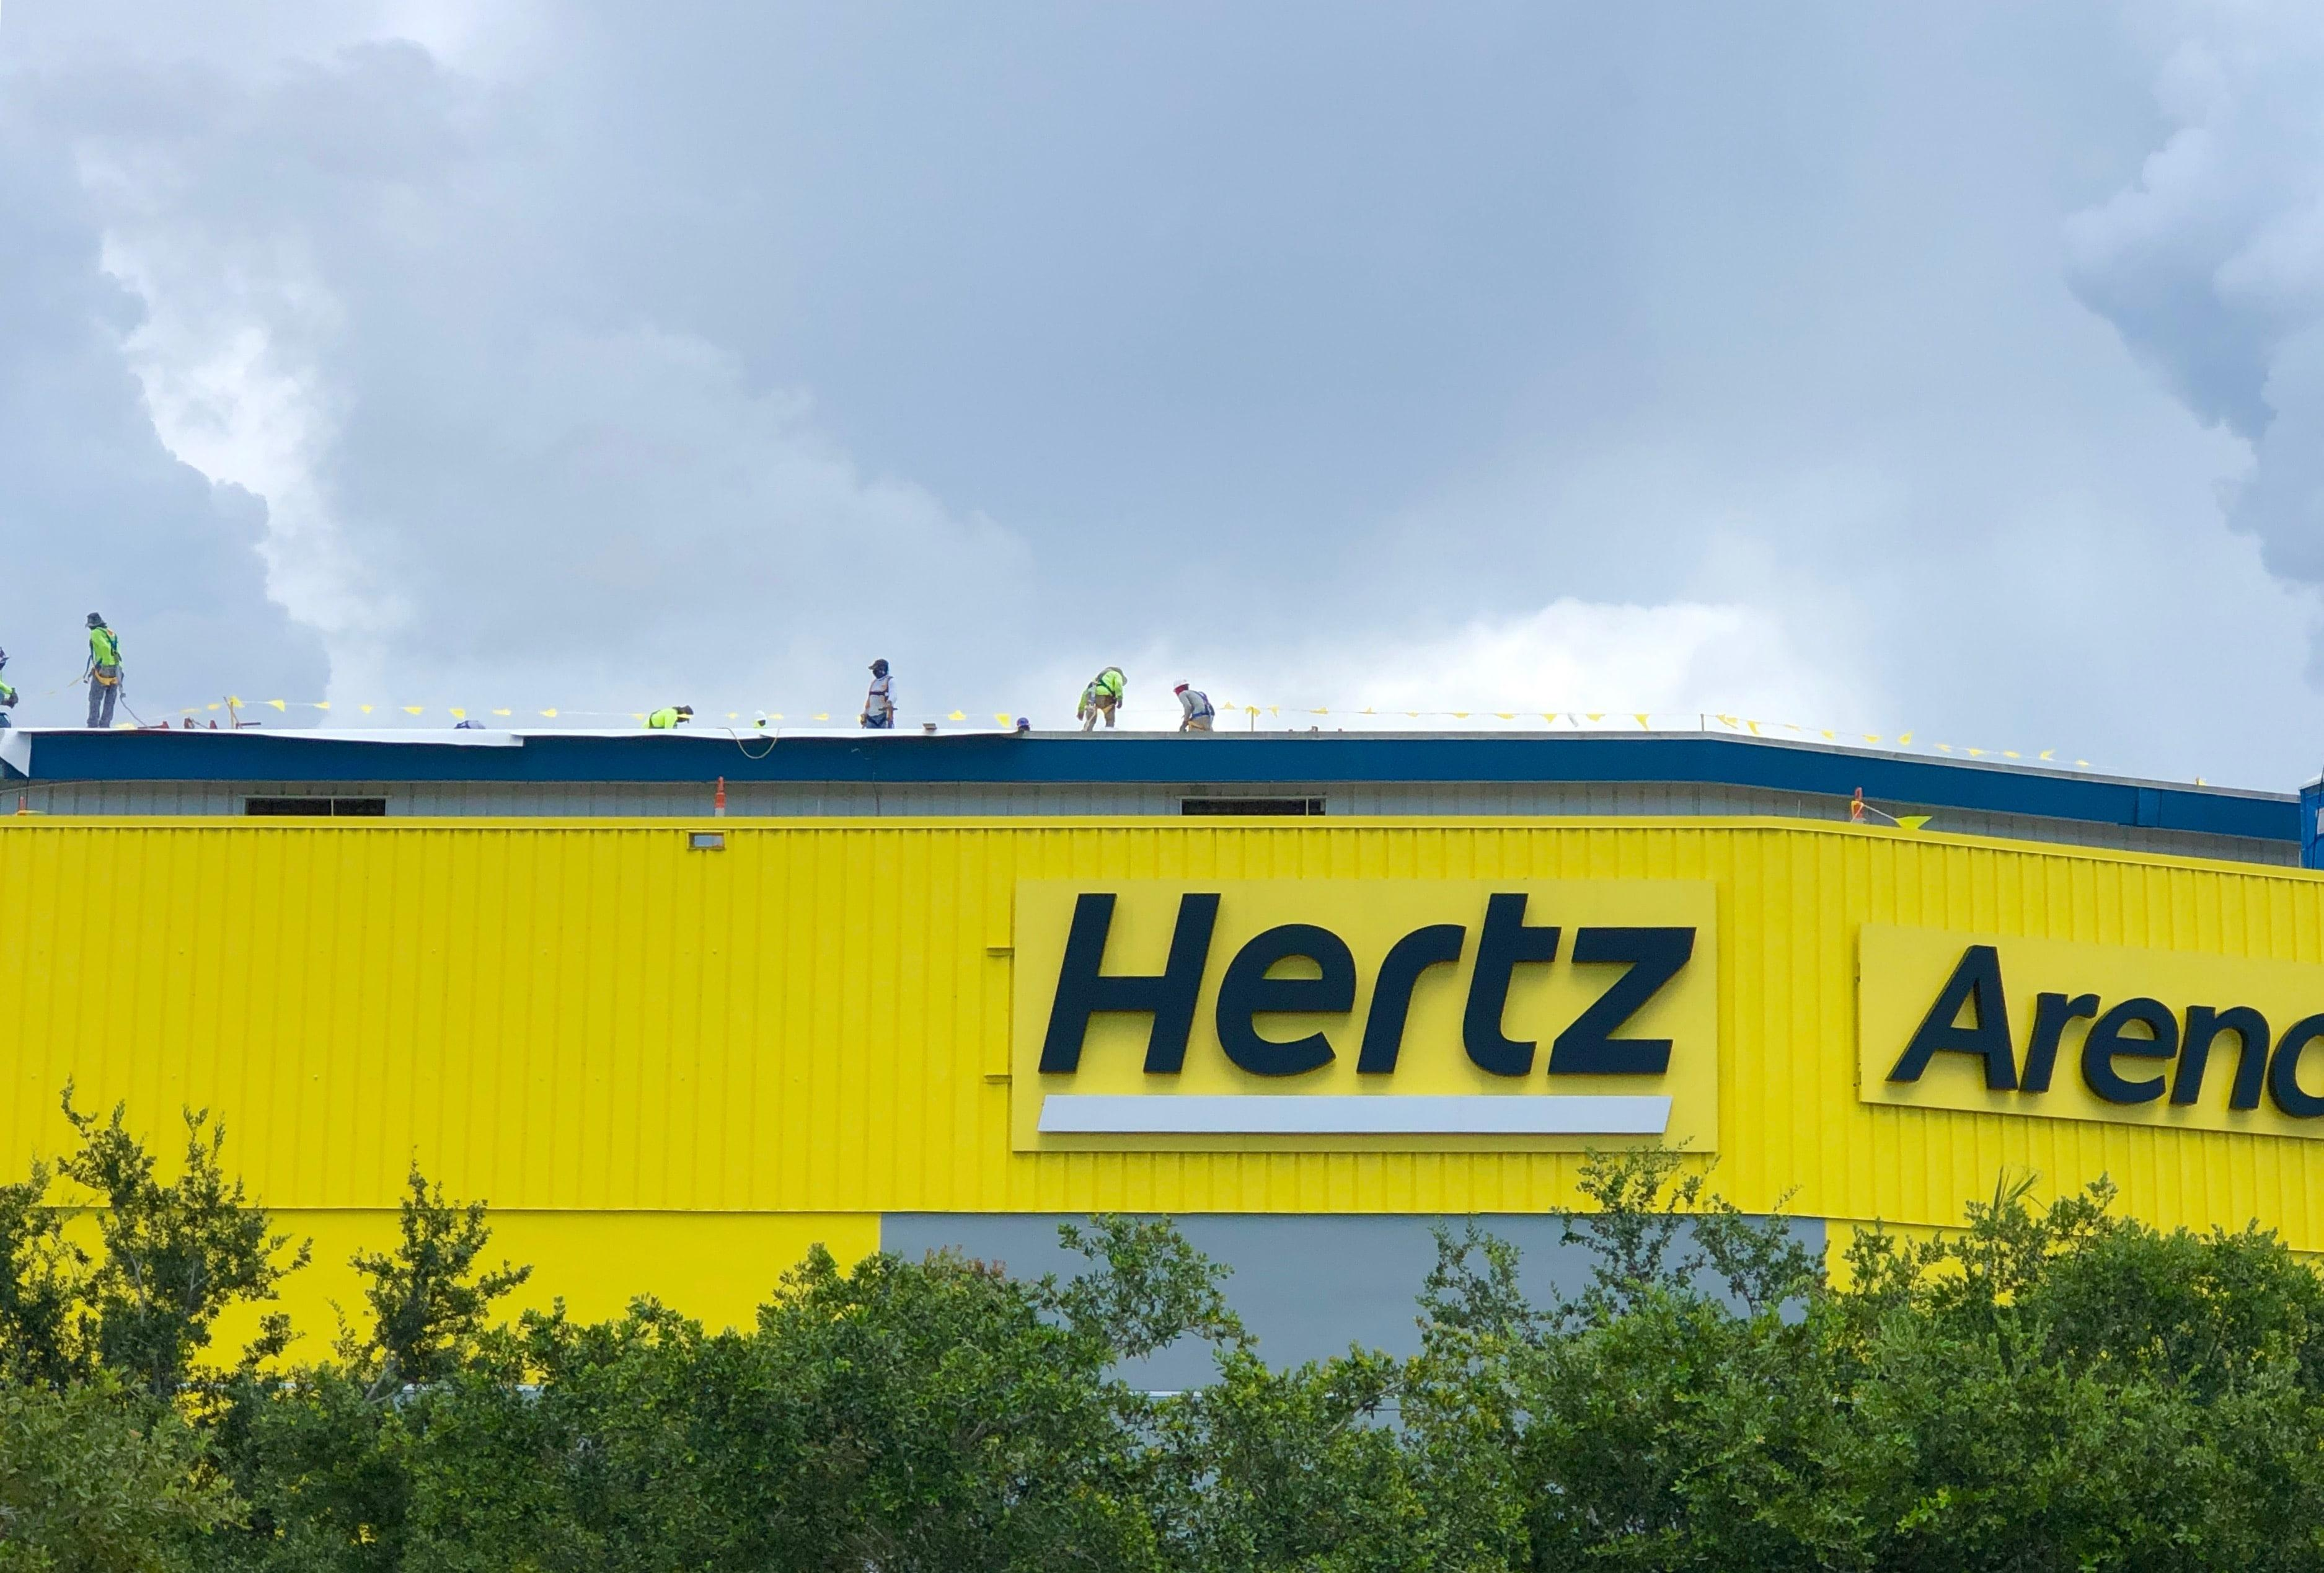 Up On Top at Hertz Areana